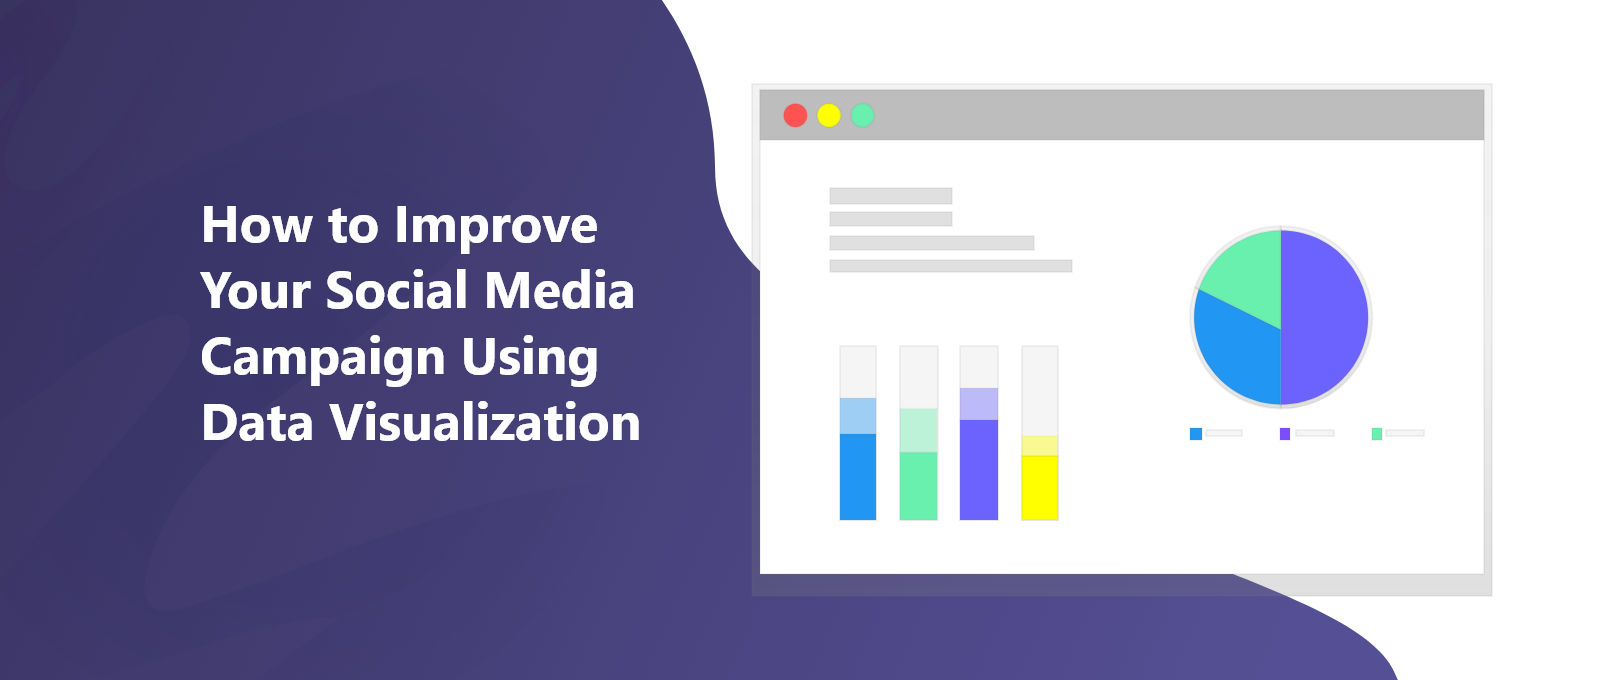 How to Improve Your Social Media Campaign Using Data Visualization